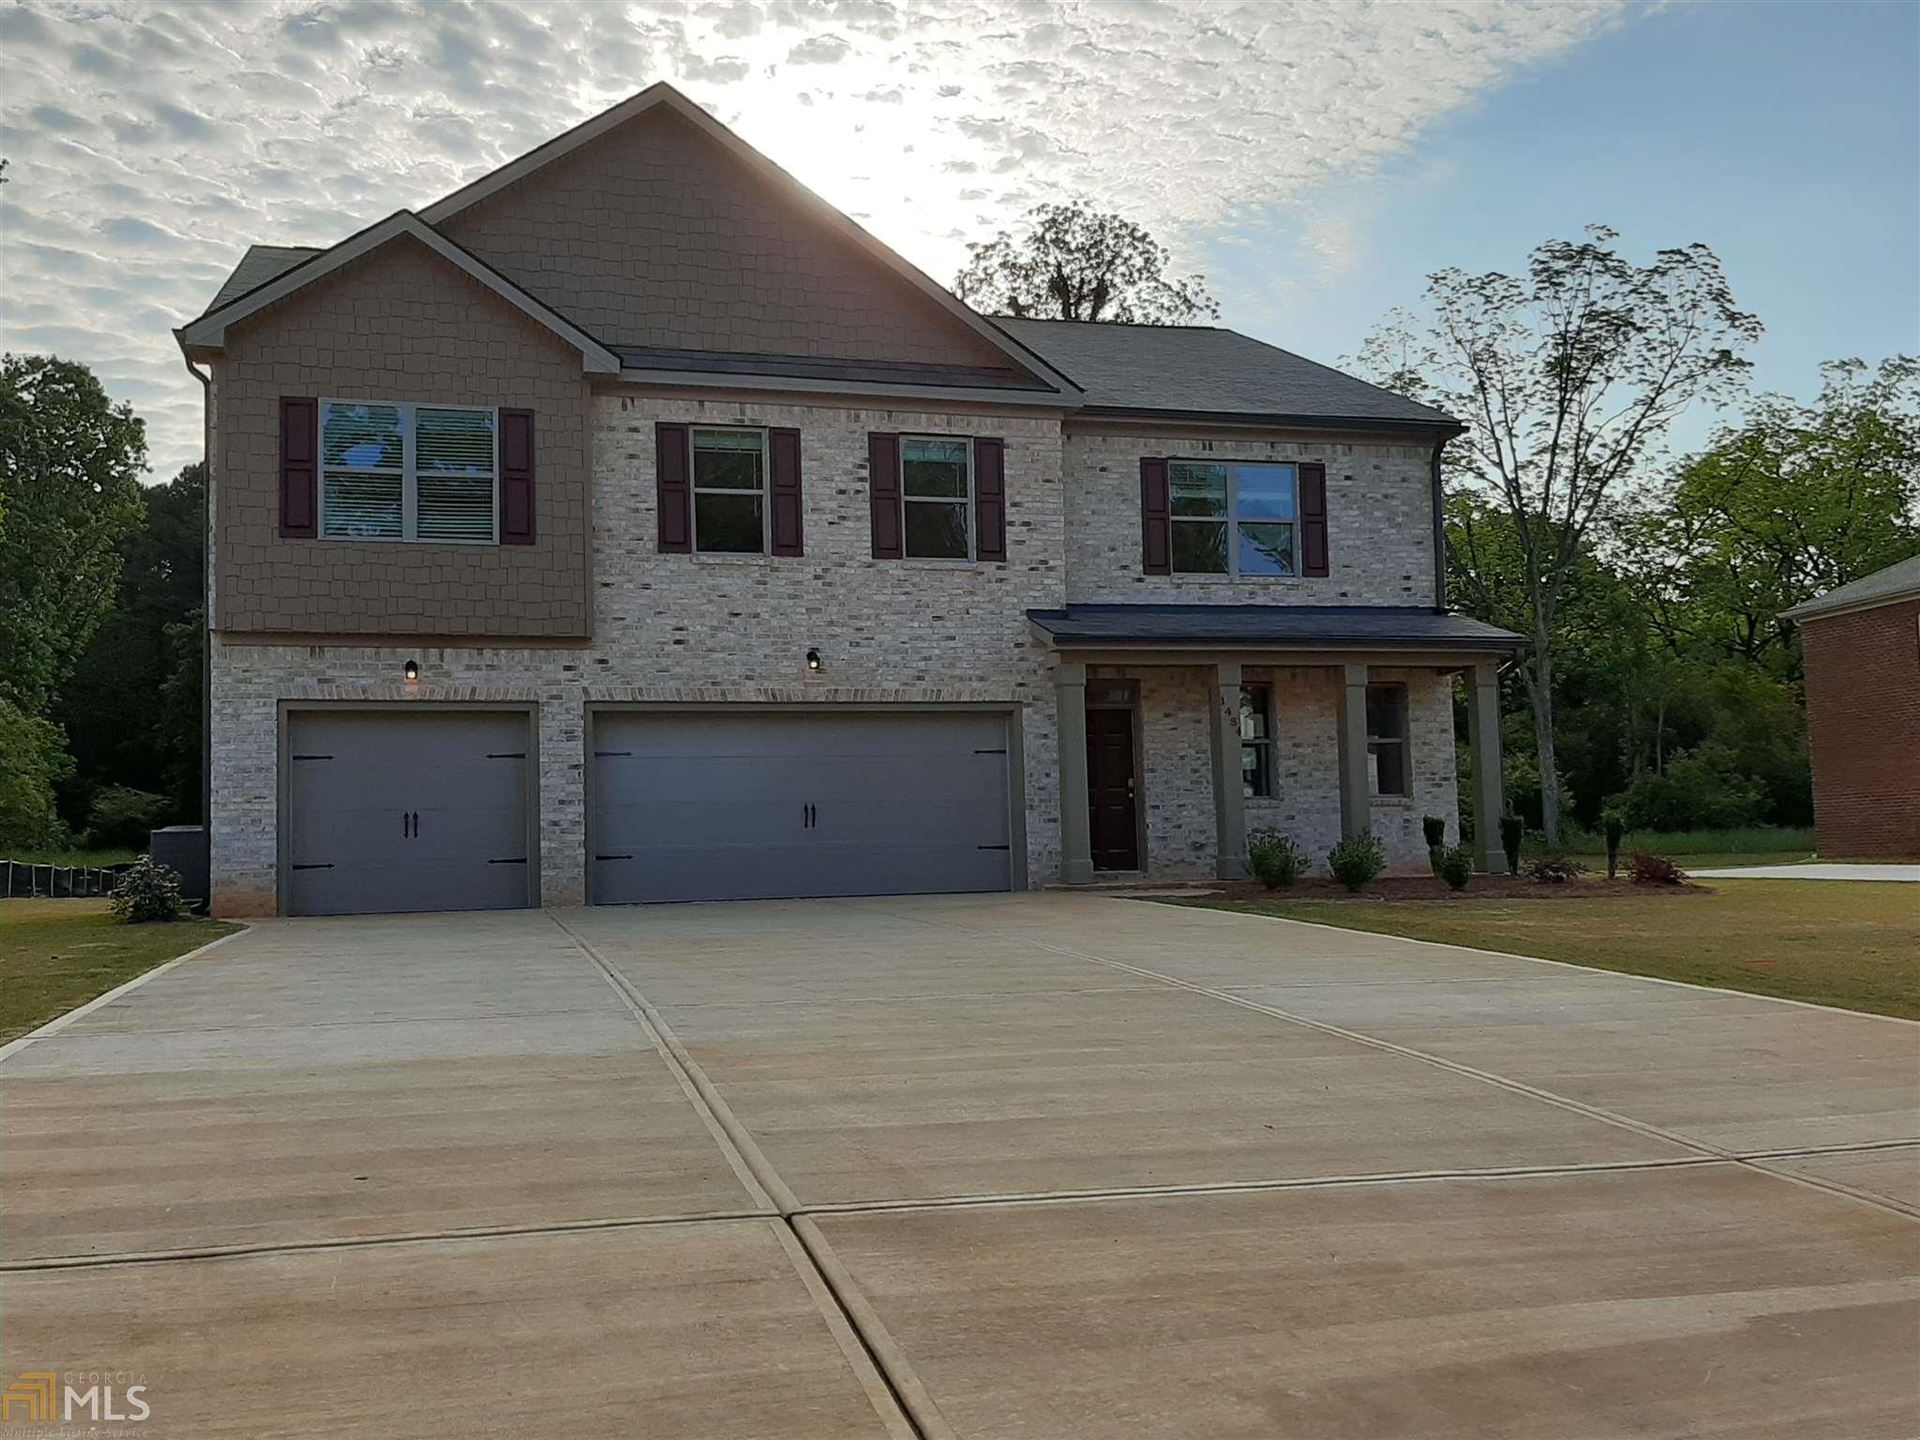 1378 Harlequin Way, Stockbridge, GA 30281 - #: 8831791